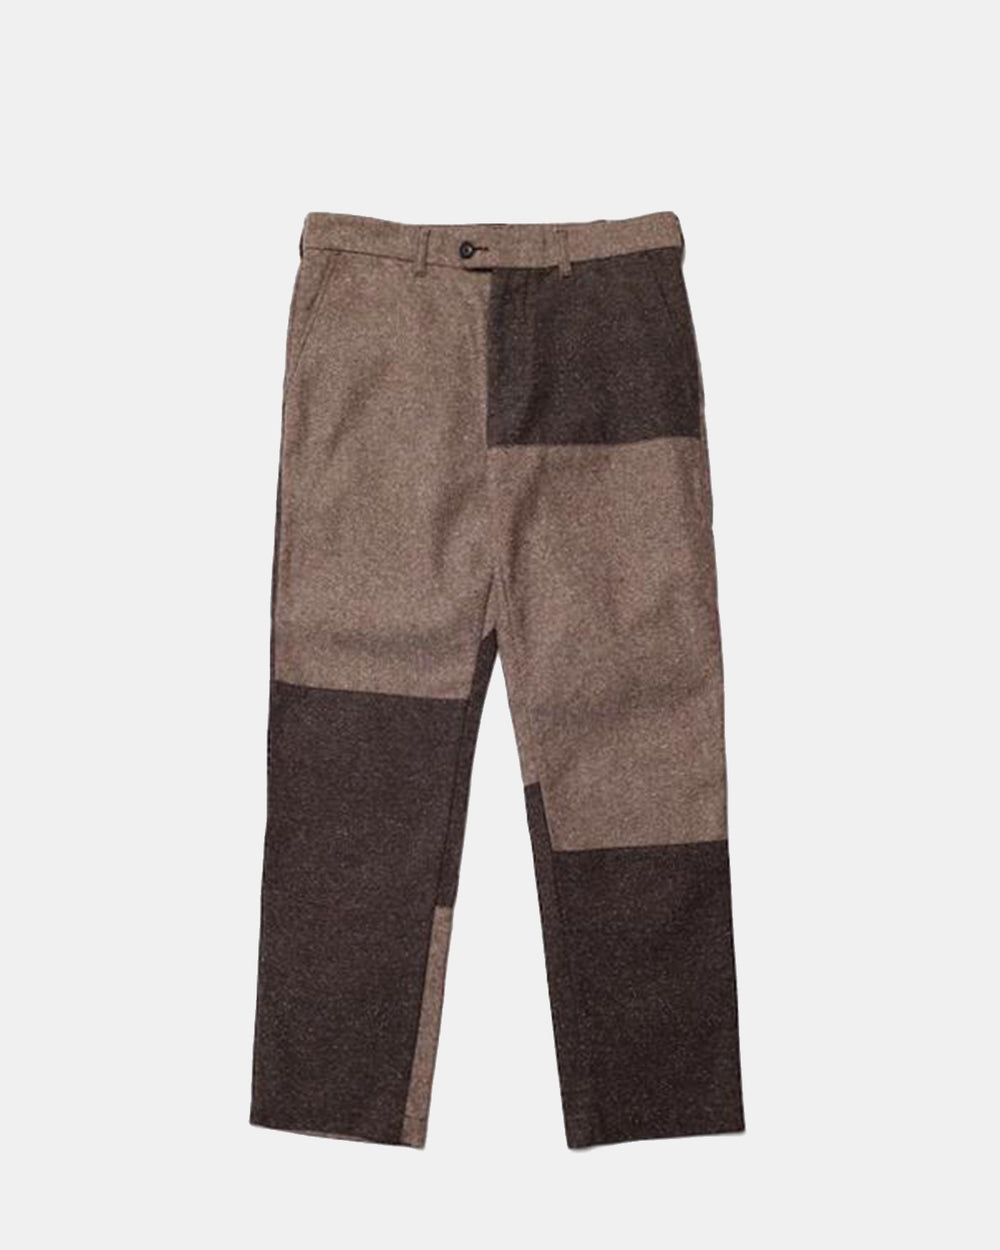 nanamica - Panel Club Pants (Heather Brown)